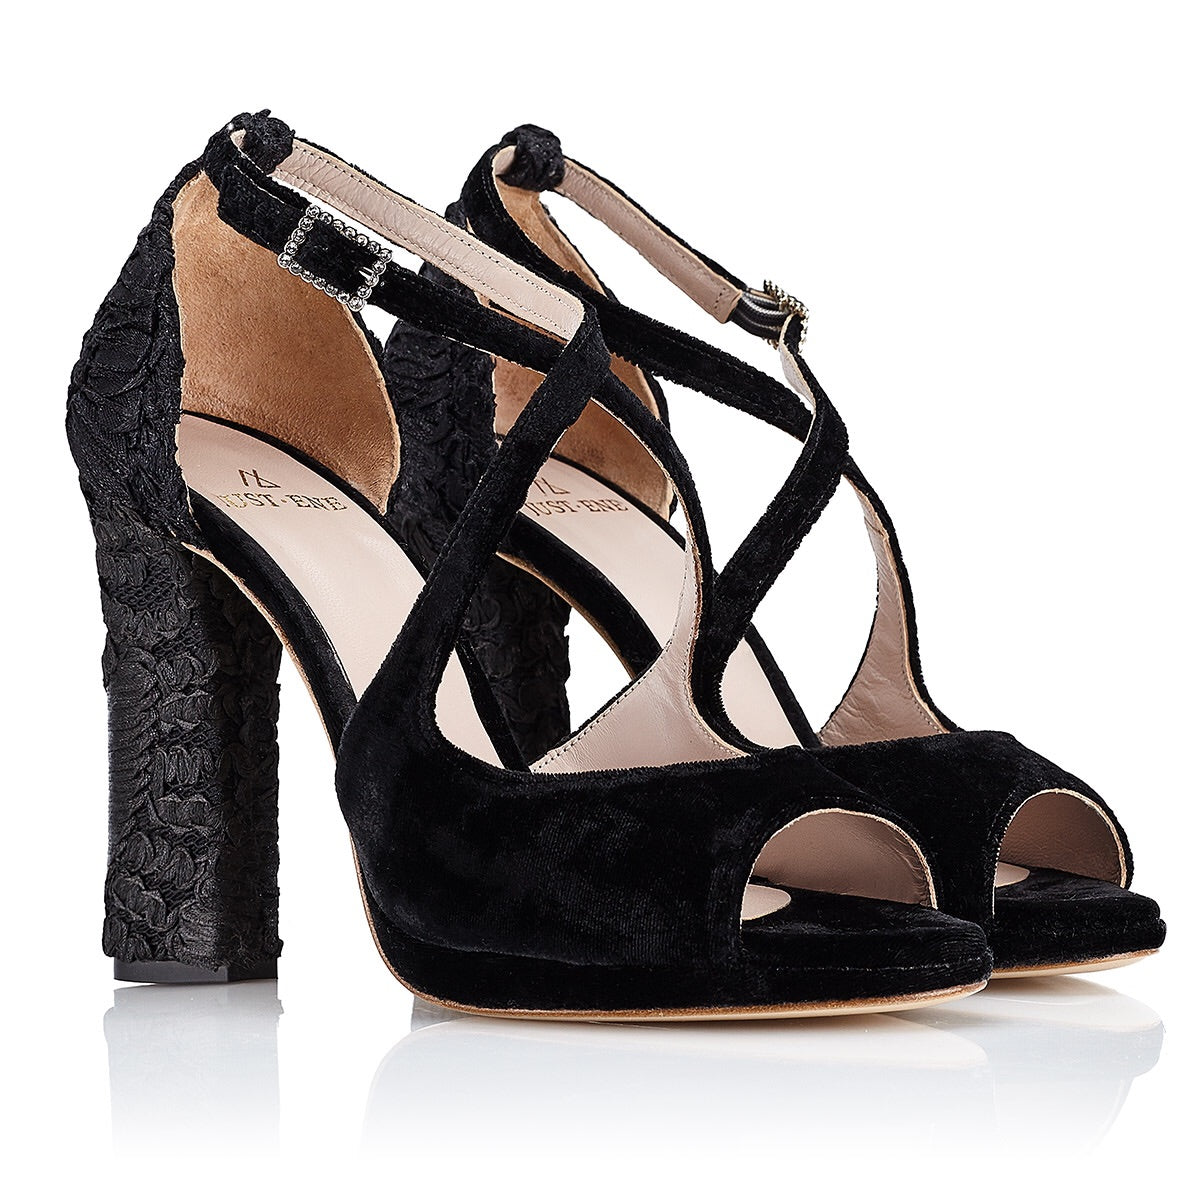 BLACK CELESTINE SANDAL ( 10 cm with platform ) - Just-ENE